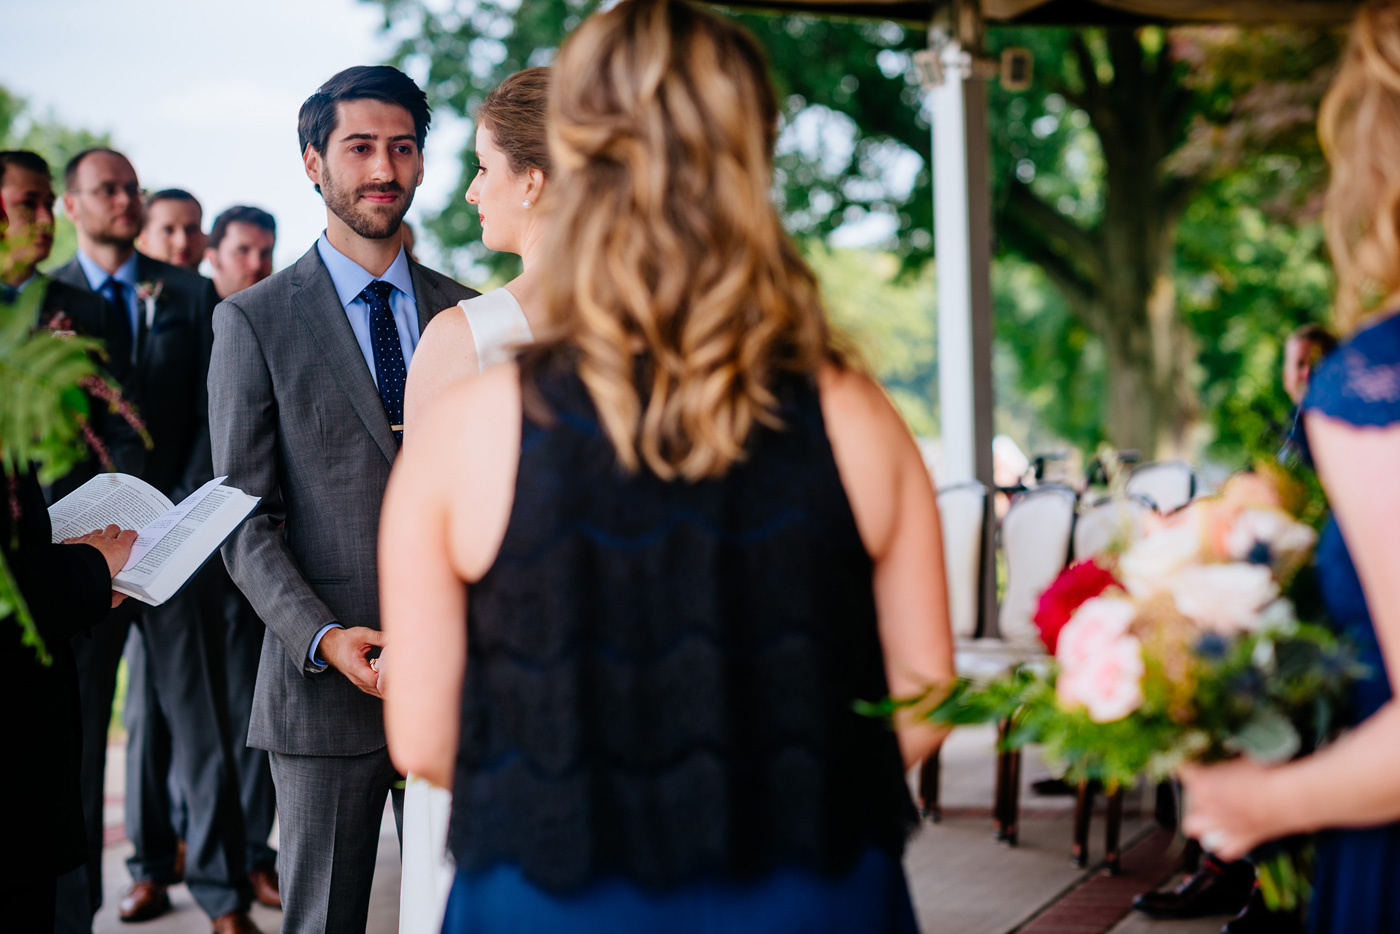 groom during wedding ceremony pittsburgh pa wedding